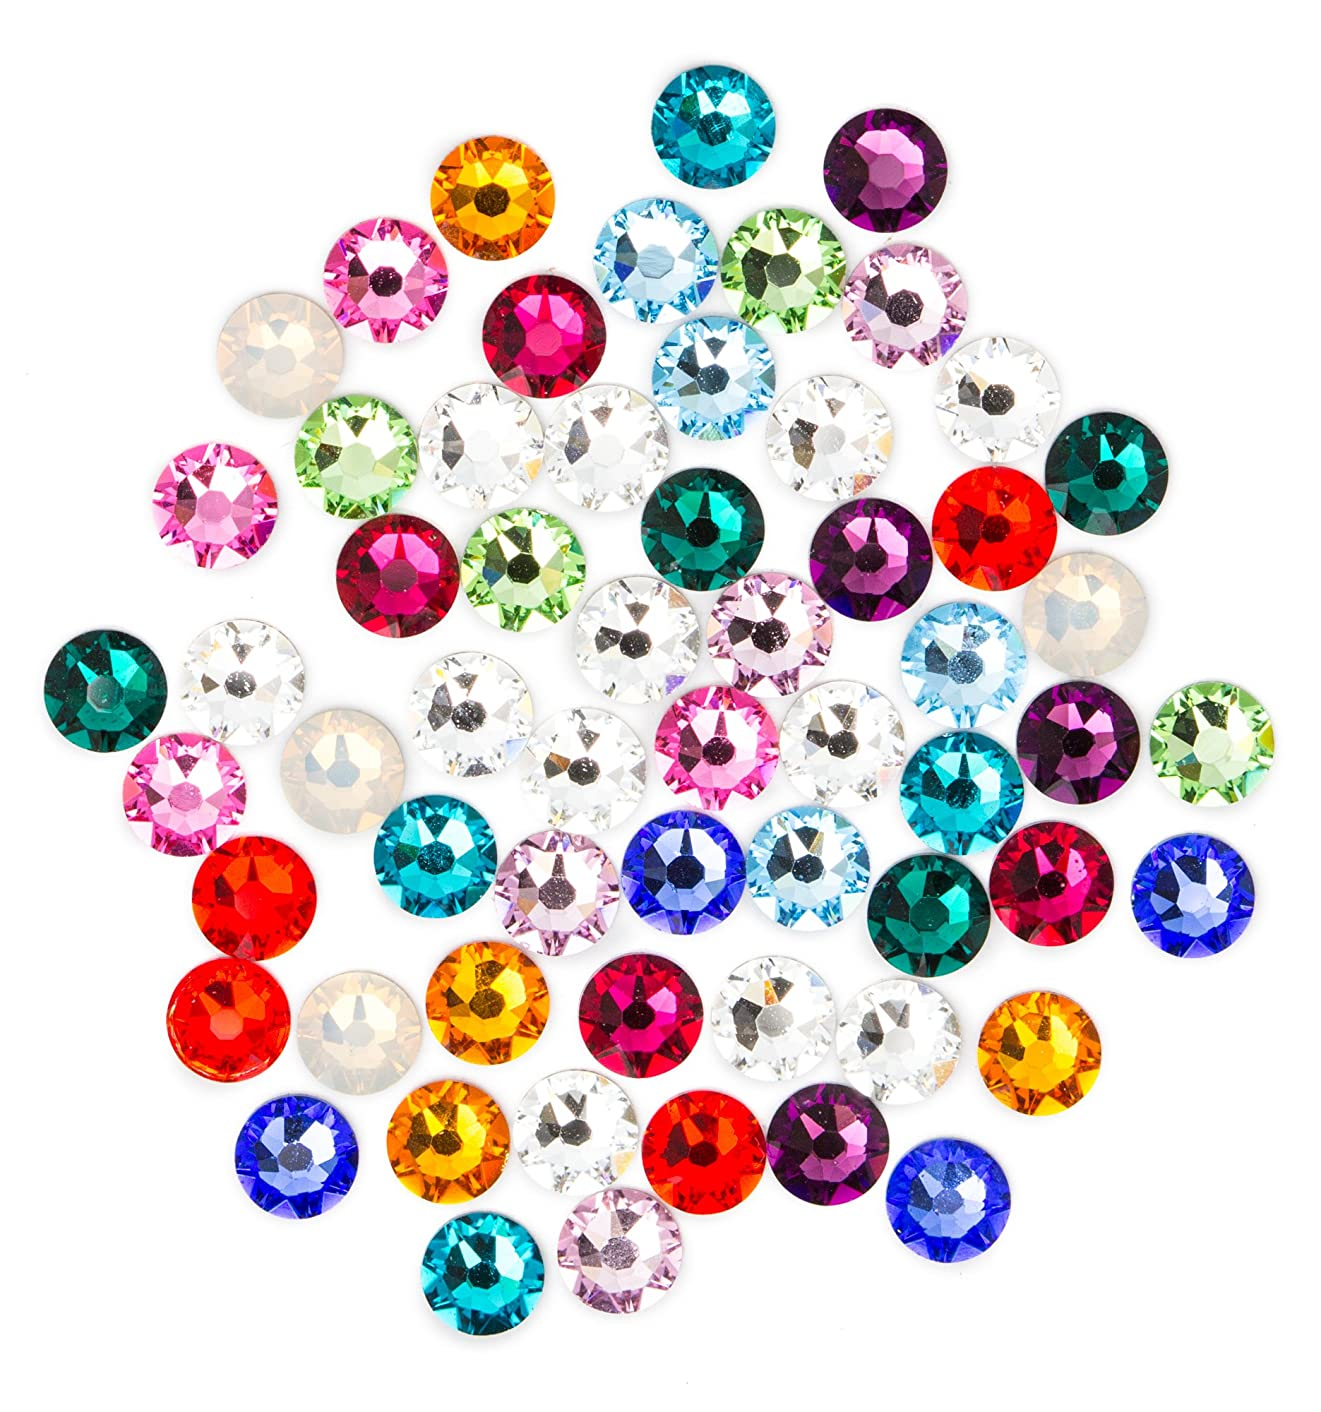 Swarovski - Create Your Style Flatback Mix Birthstne 3 packages of 60 Piece (180 Total Crystals)